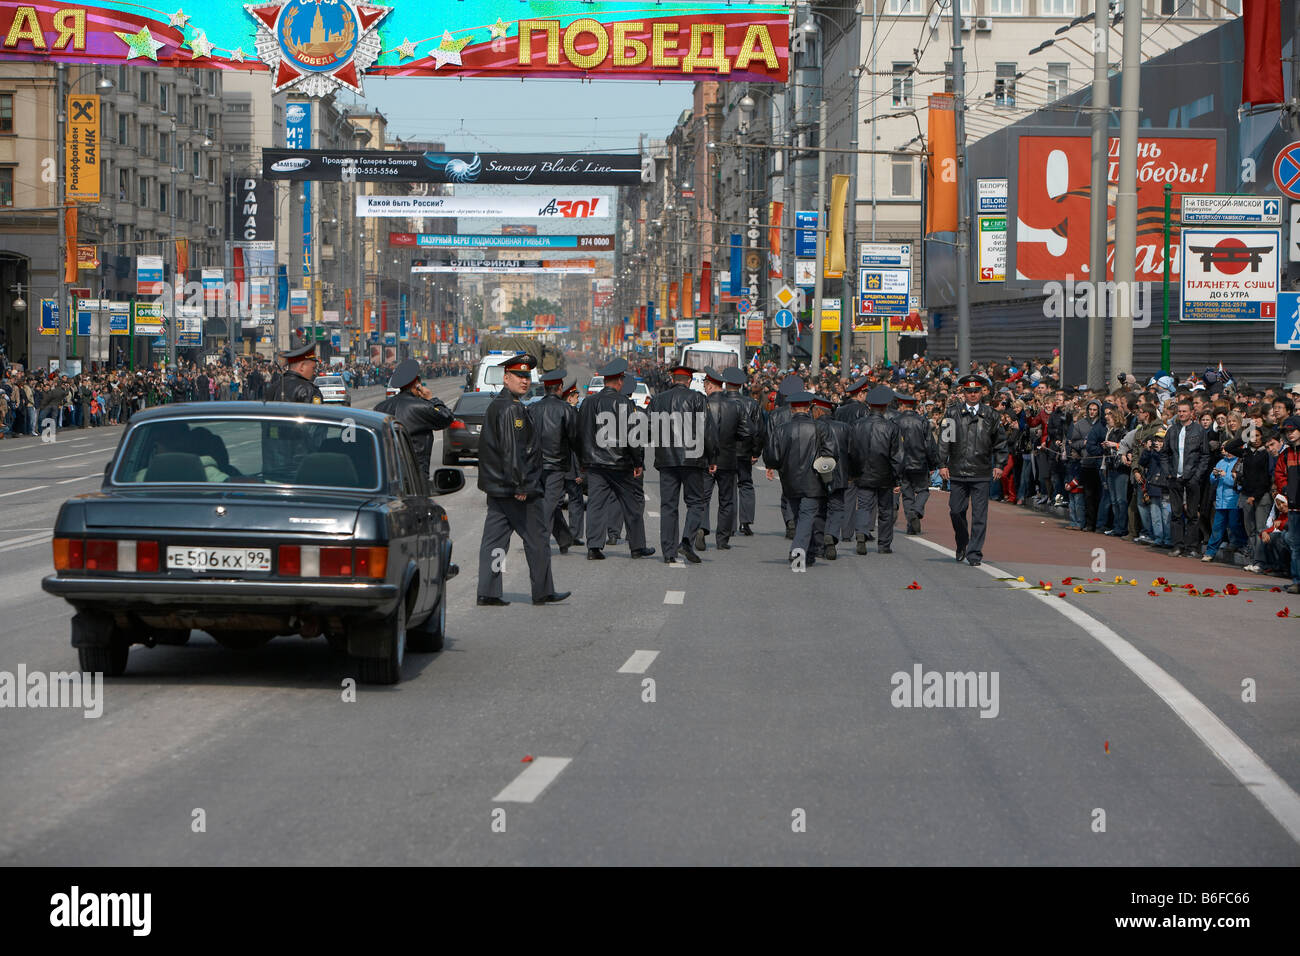 Russian Military during Victory Day Celebration, Moscow Russia - Stock Image